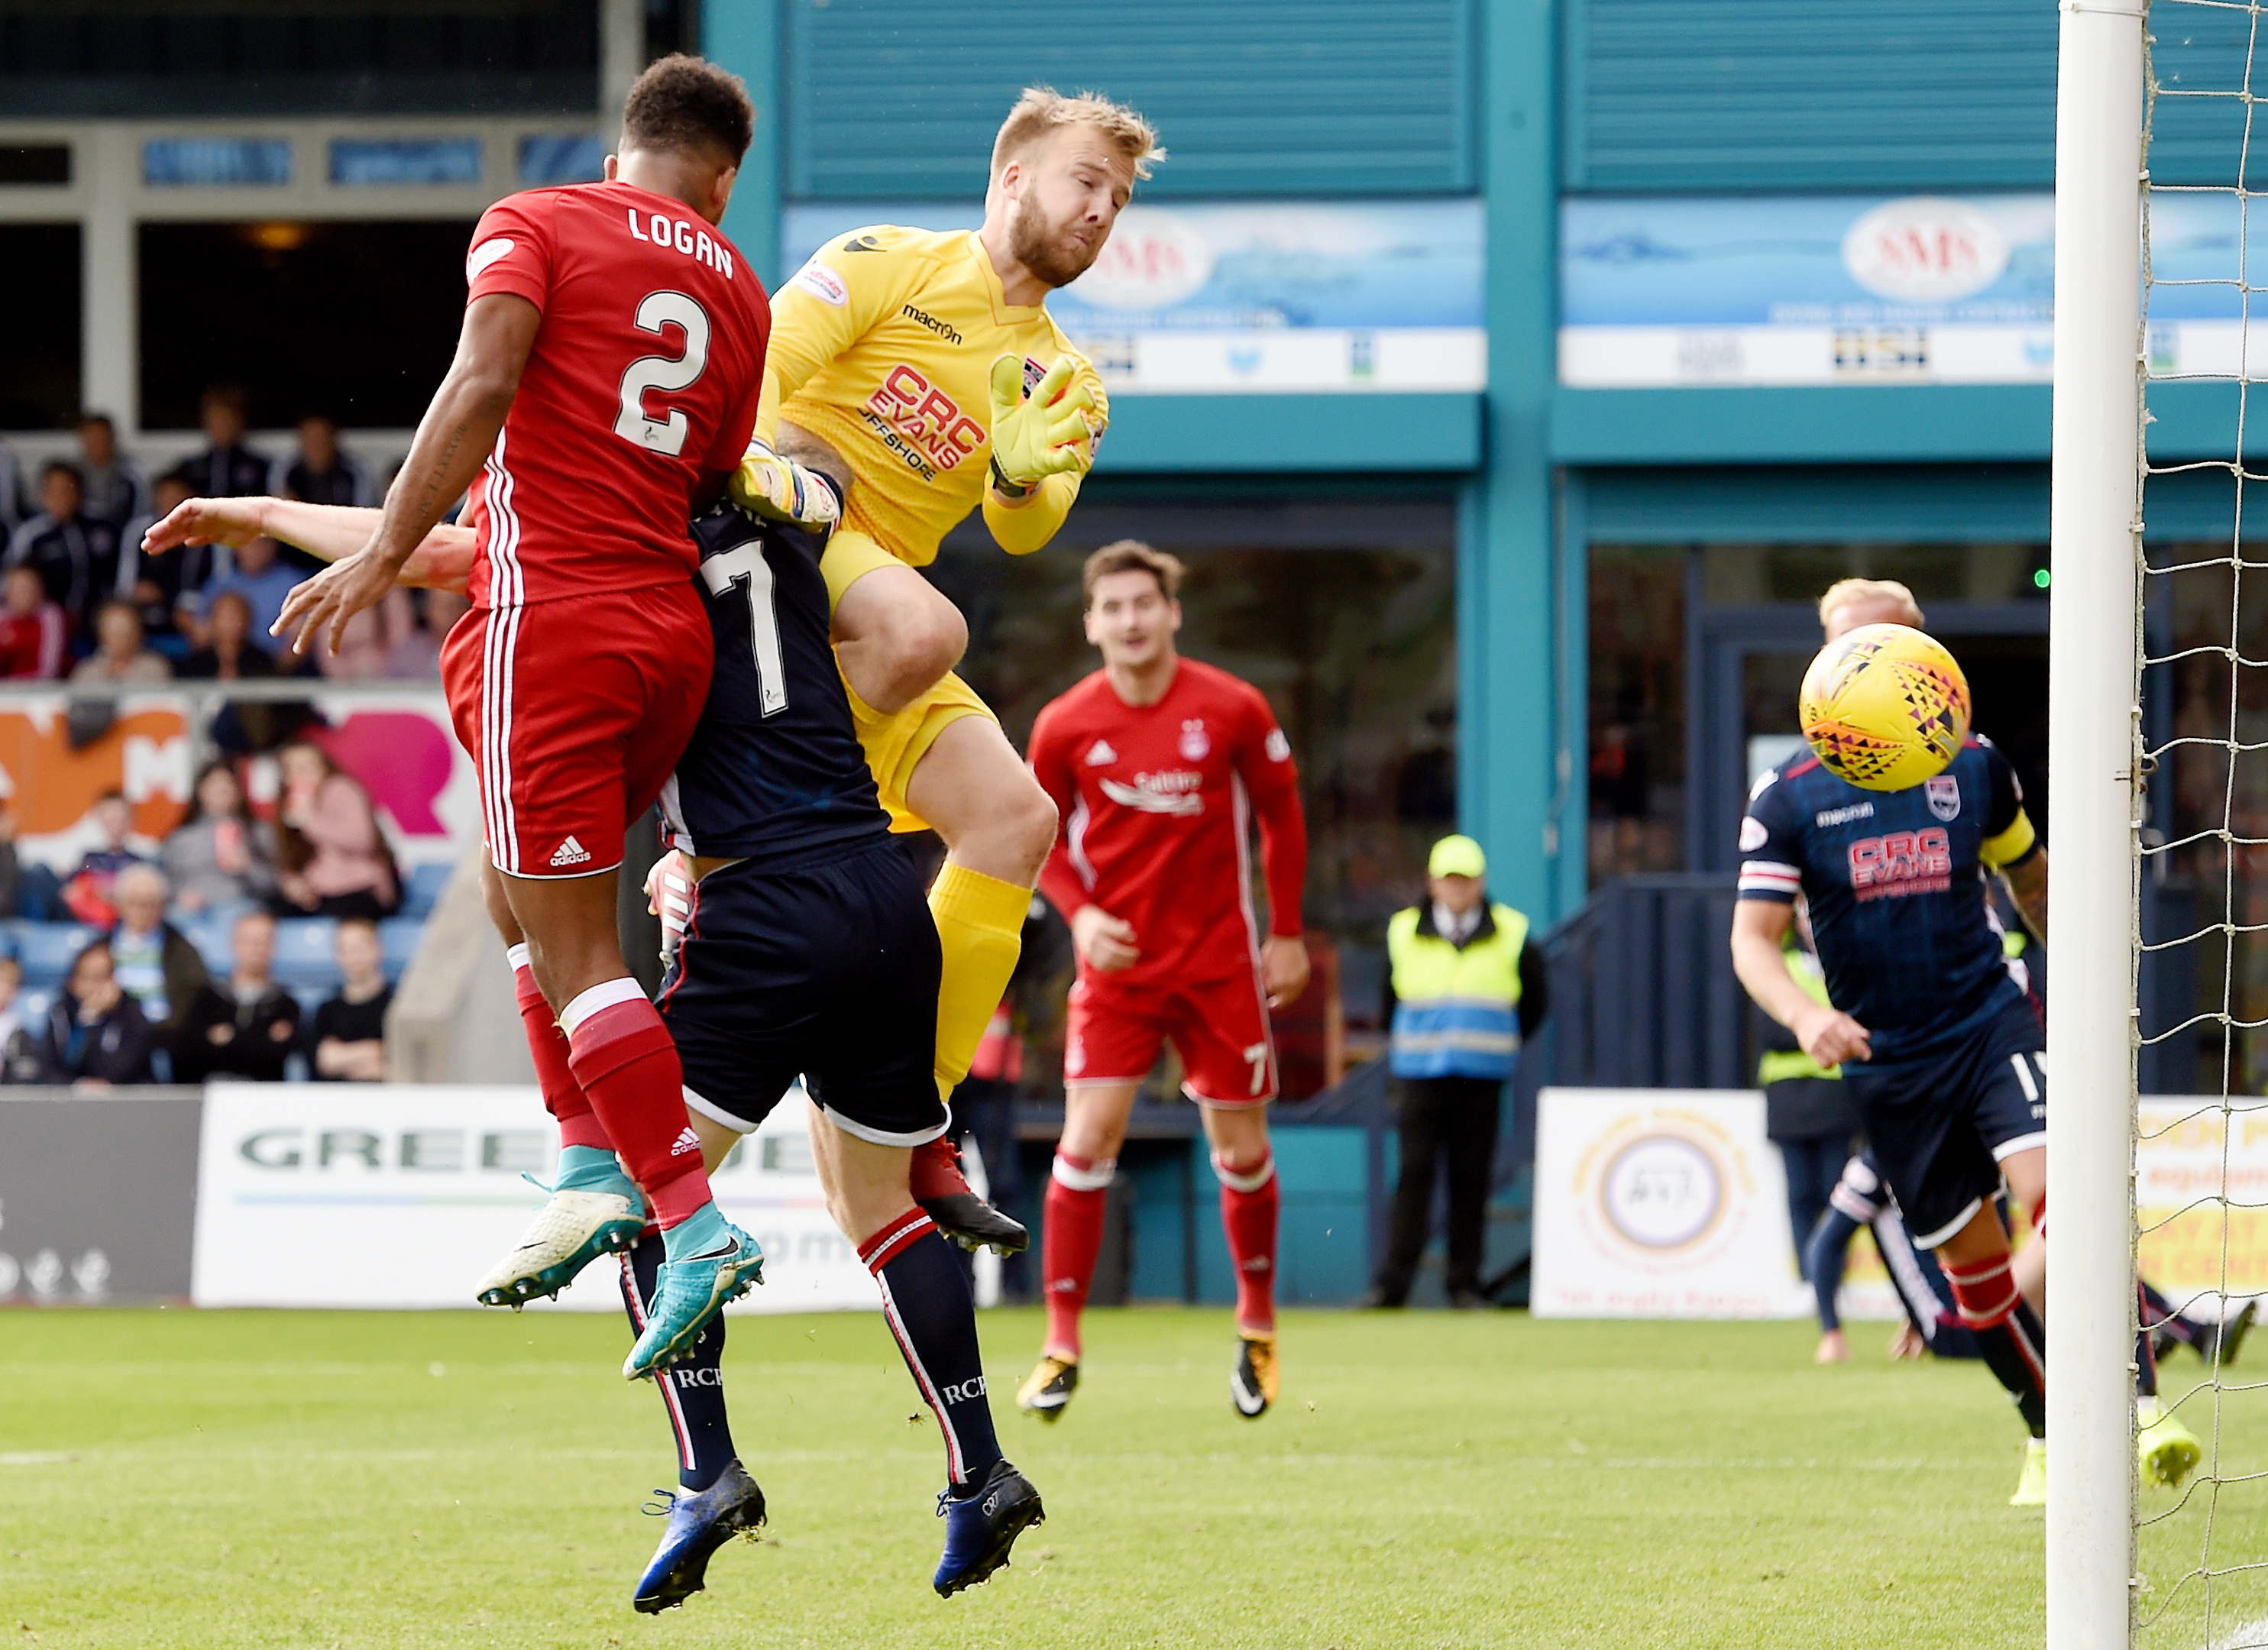 Aberdeen's Shay Logan puts his side in the lead.